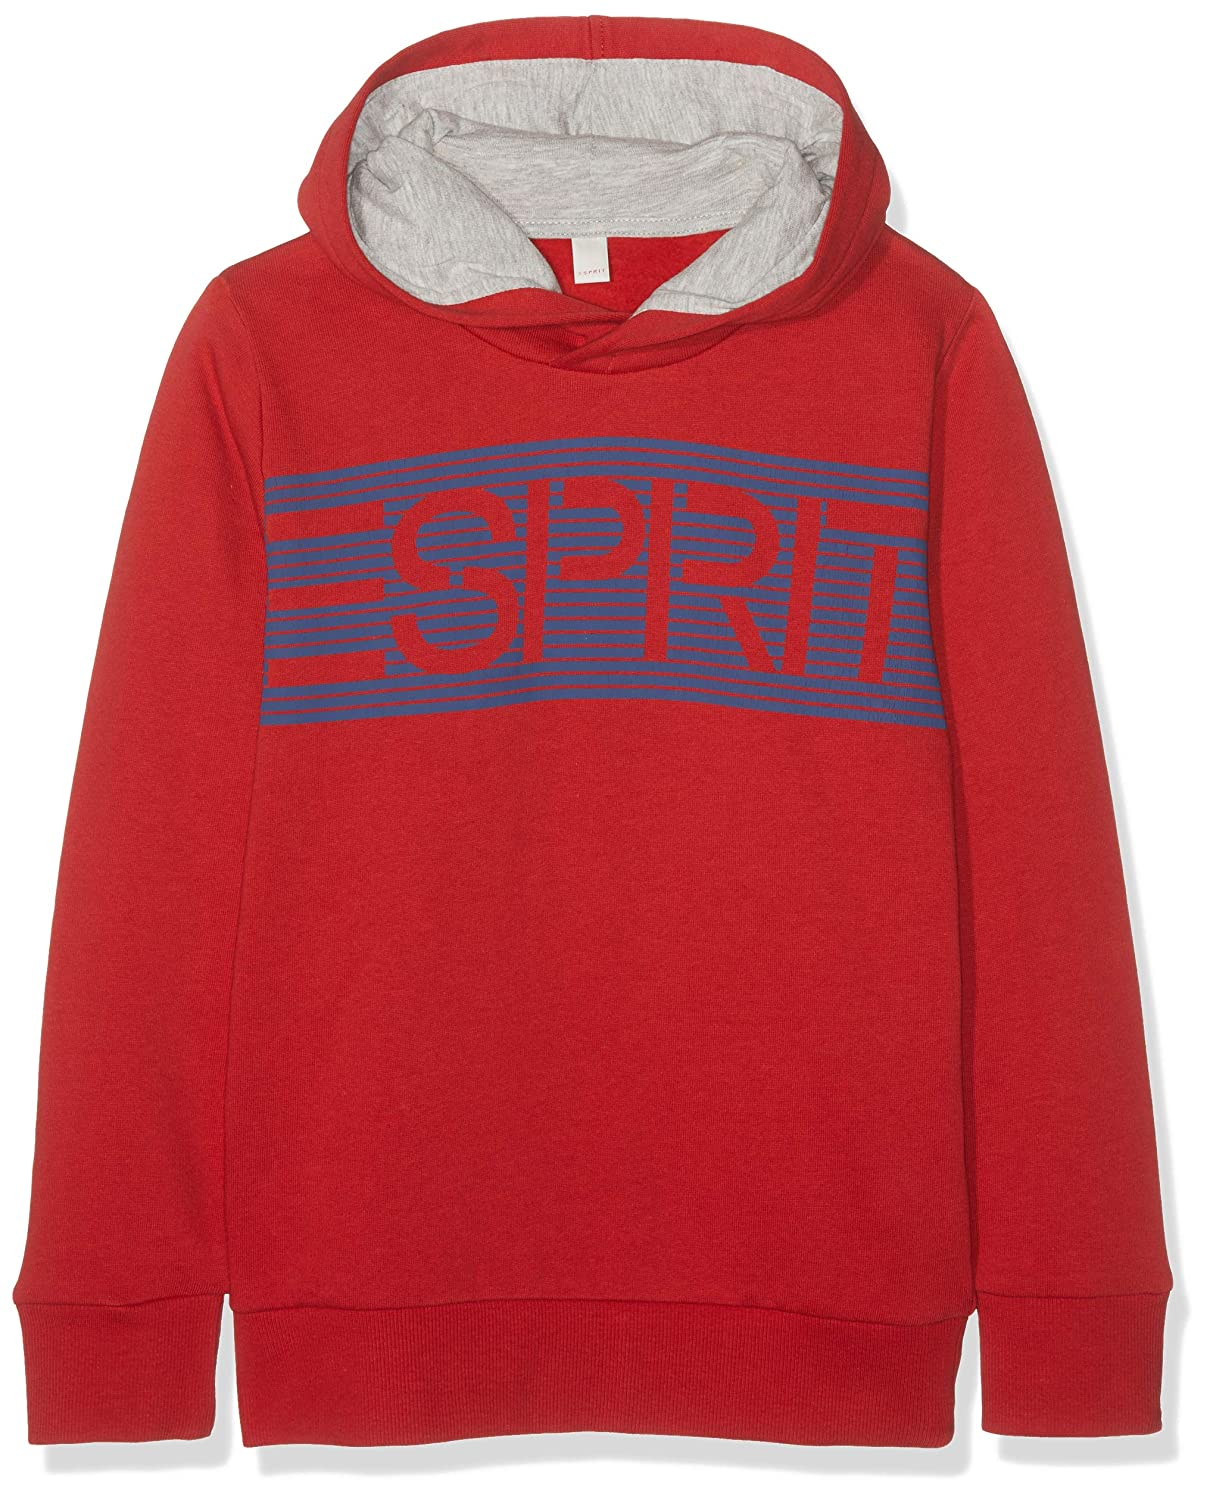 Esprit Kids Sweat Shirt For Boy, Sudadera para Niños: Amazon.es: Ropa y accesorios